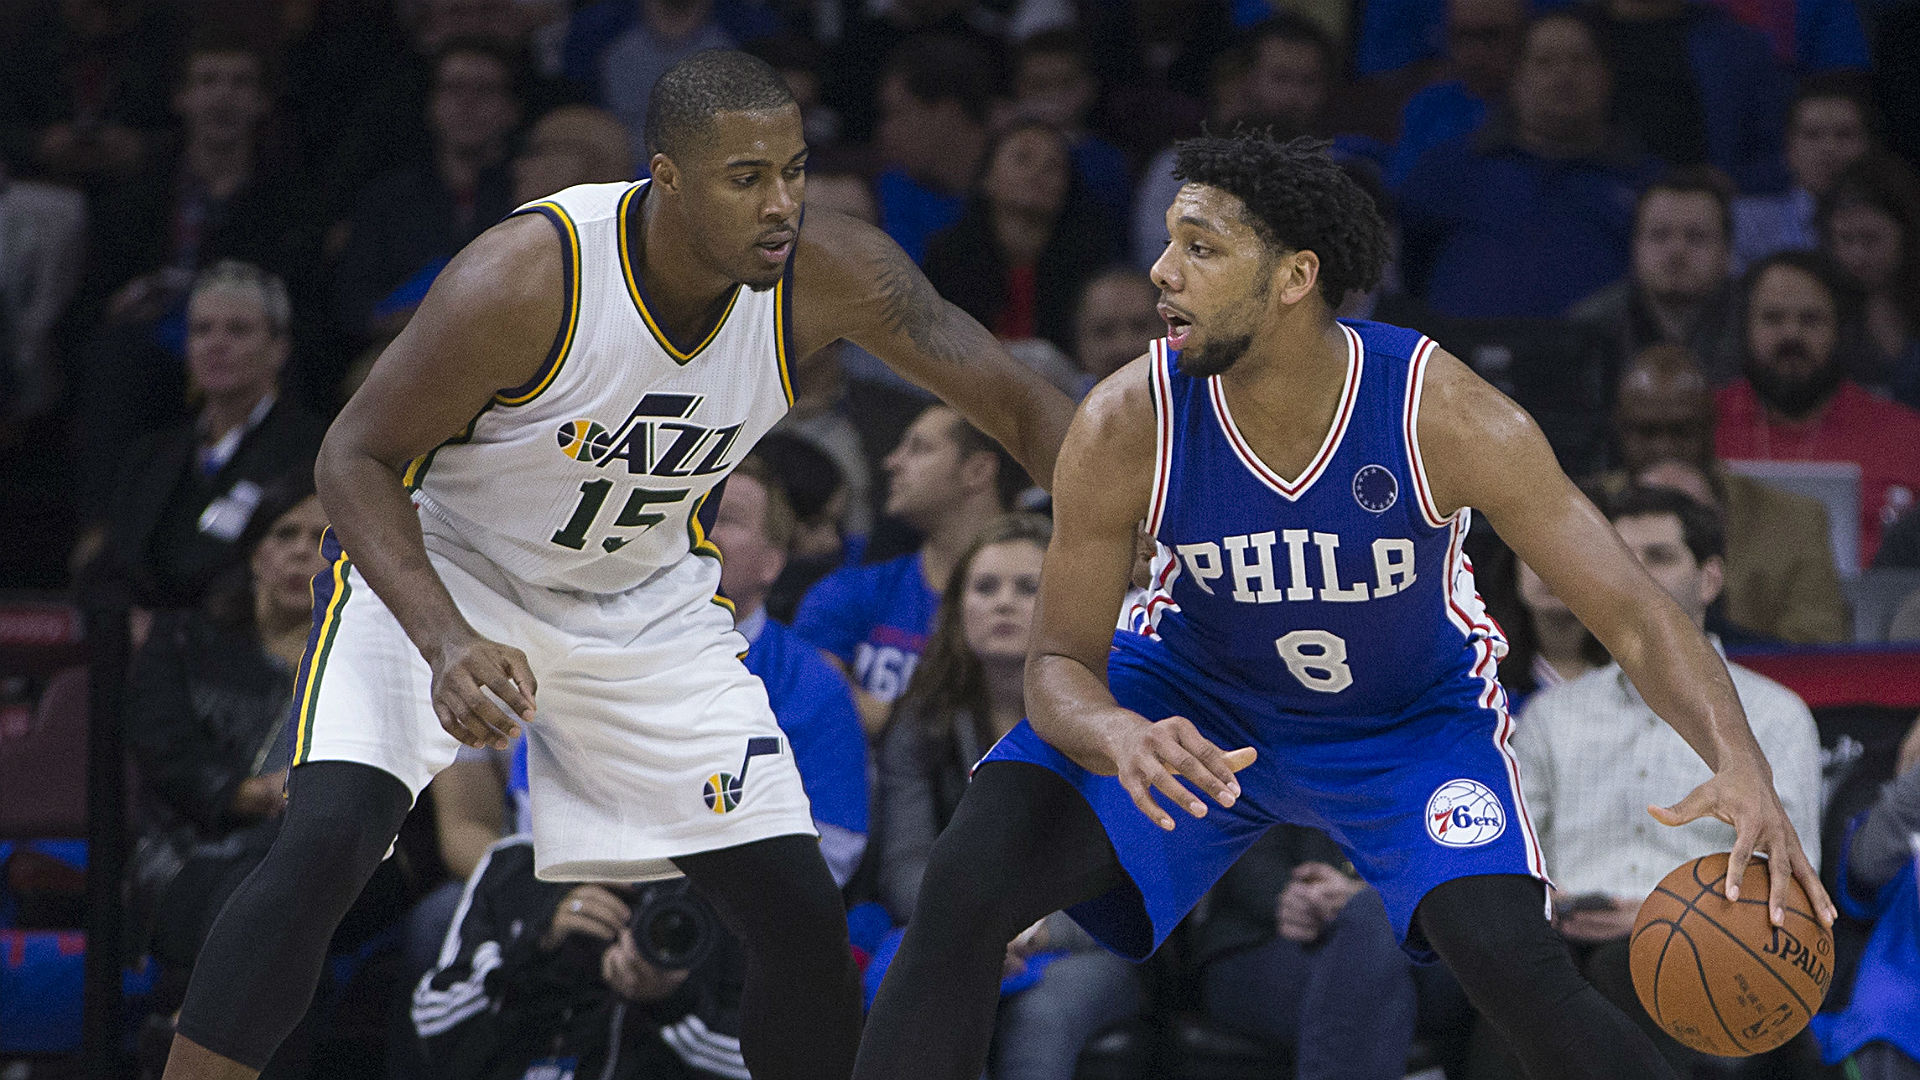 Wednesday NBA picks and projections: AccuScore likes two